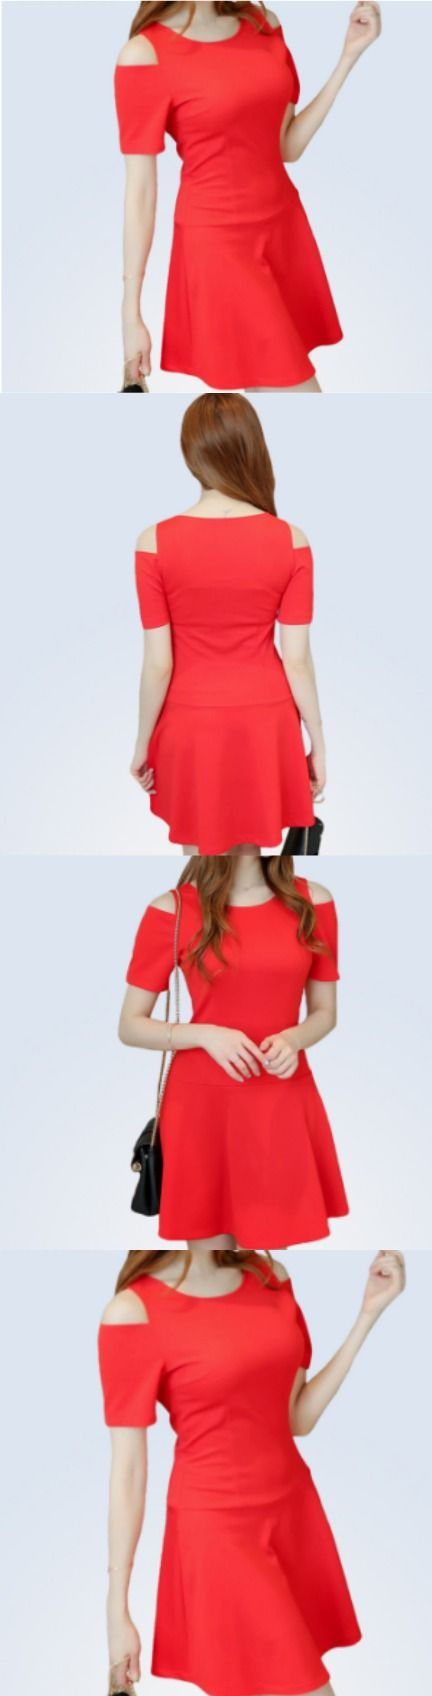 Red Tunic Dress! Click The Image To Buy It Now or Tag Someone You Want To Buy This For. #RedDress